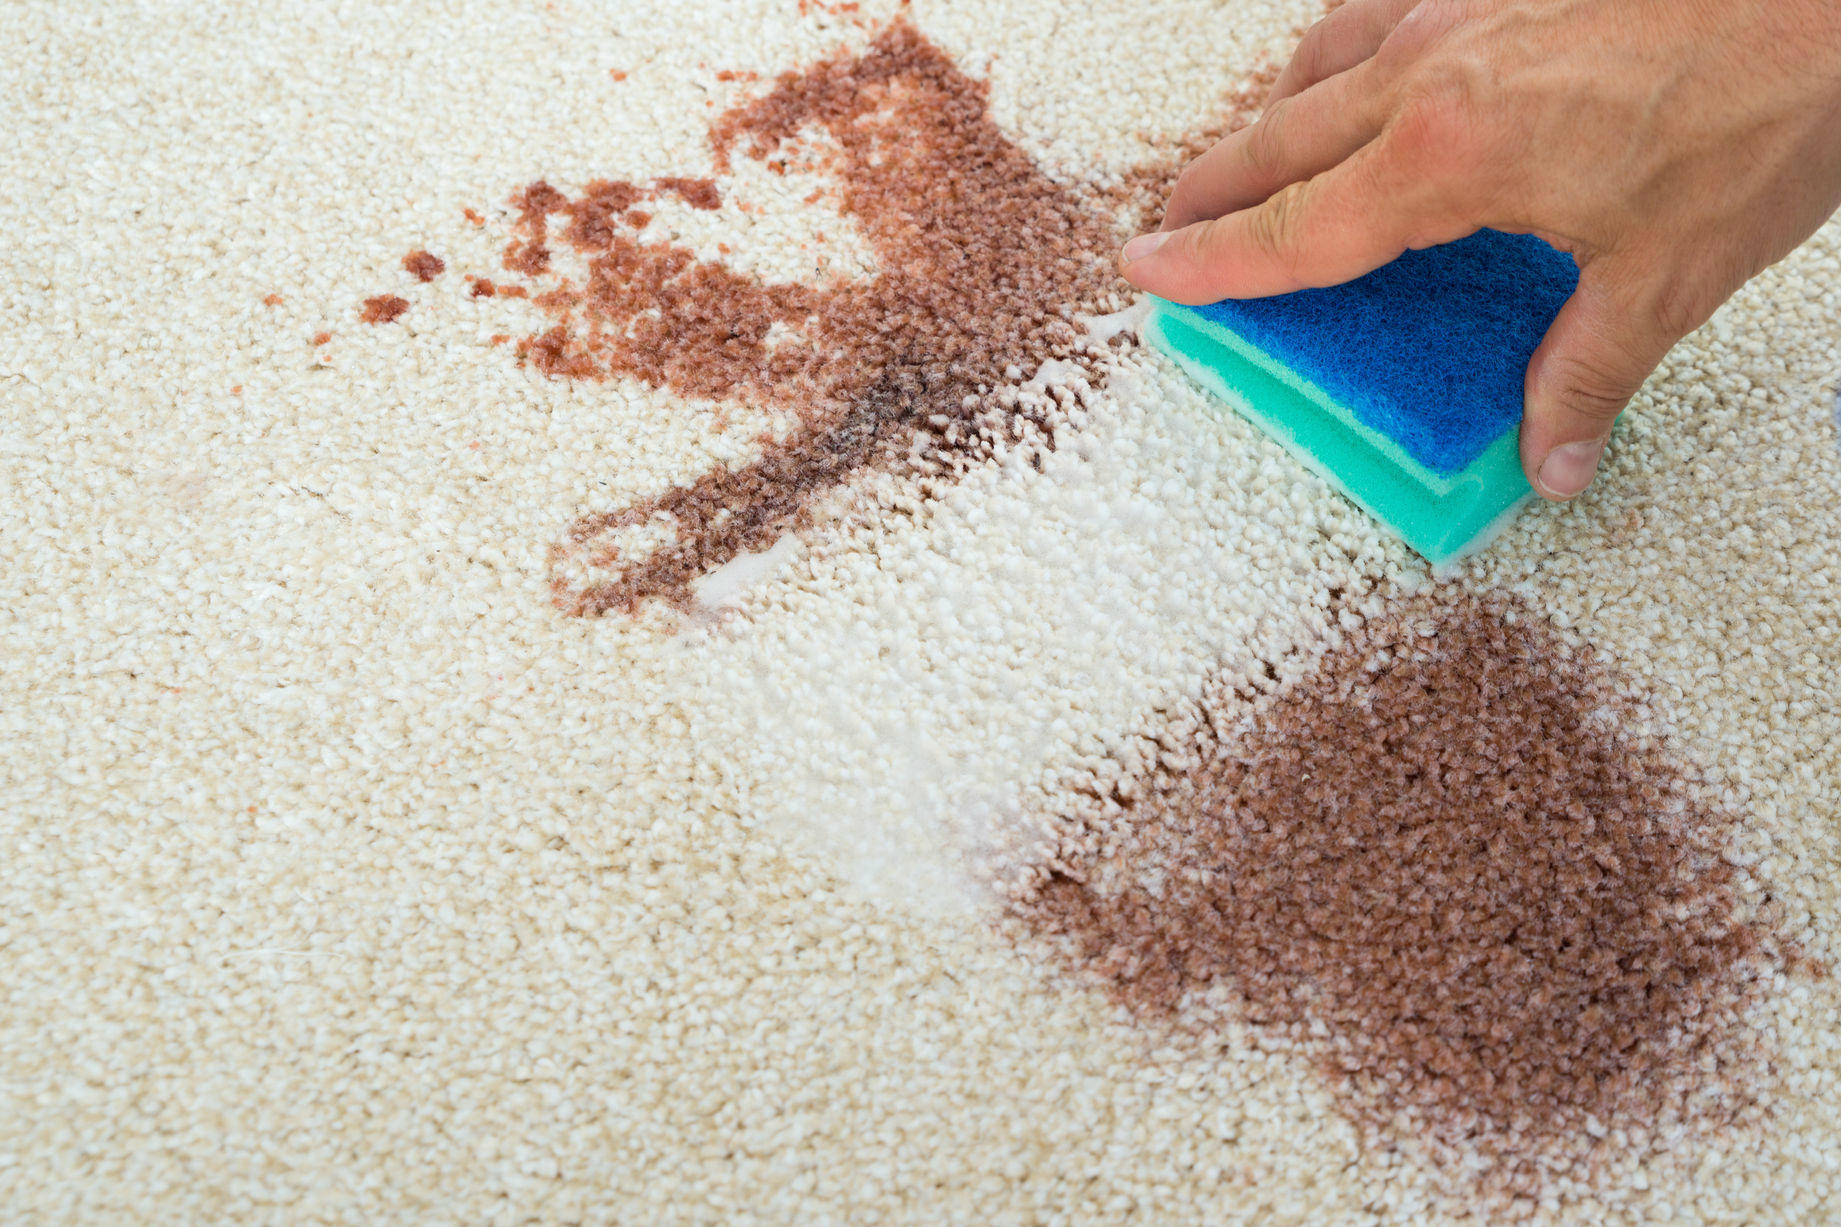 How To Remove Bloodstains Digital Trends